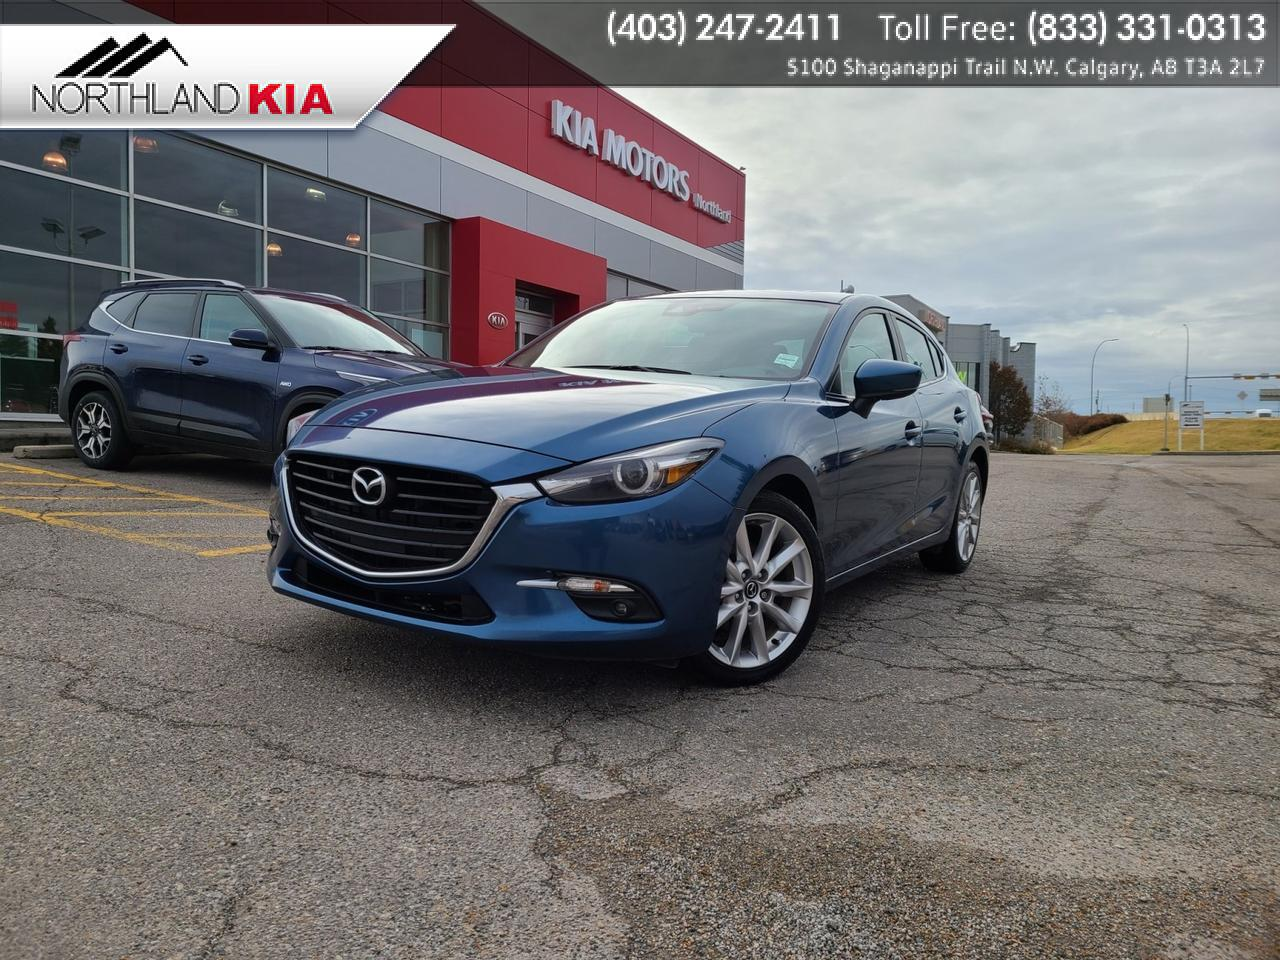 2018 Mazda Mazda3 Sport GT HEATED SEATS/STEERING WHEEL, BACKUP CAMERA, SUNROOF